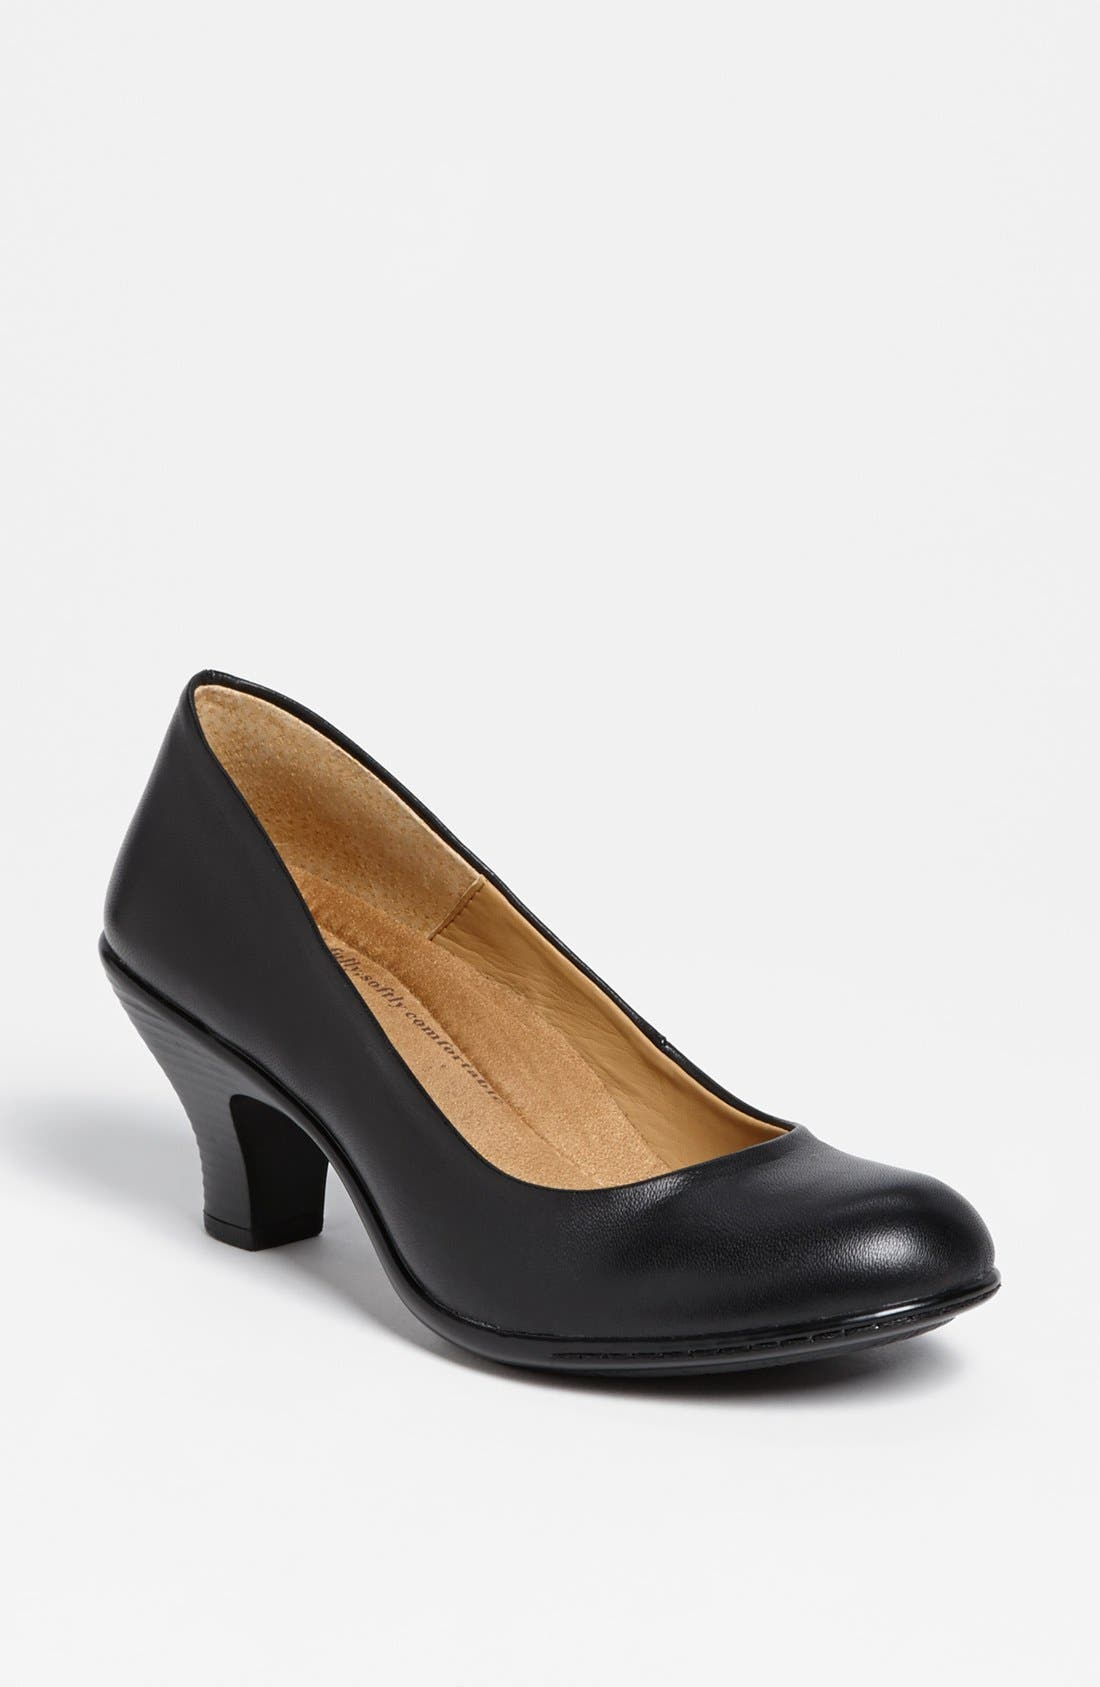 Alternate Image 1 Selected - Softspots 'Salude' Patent Pump